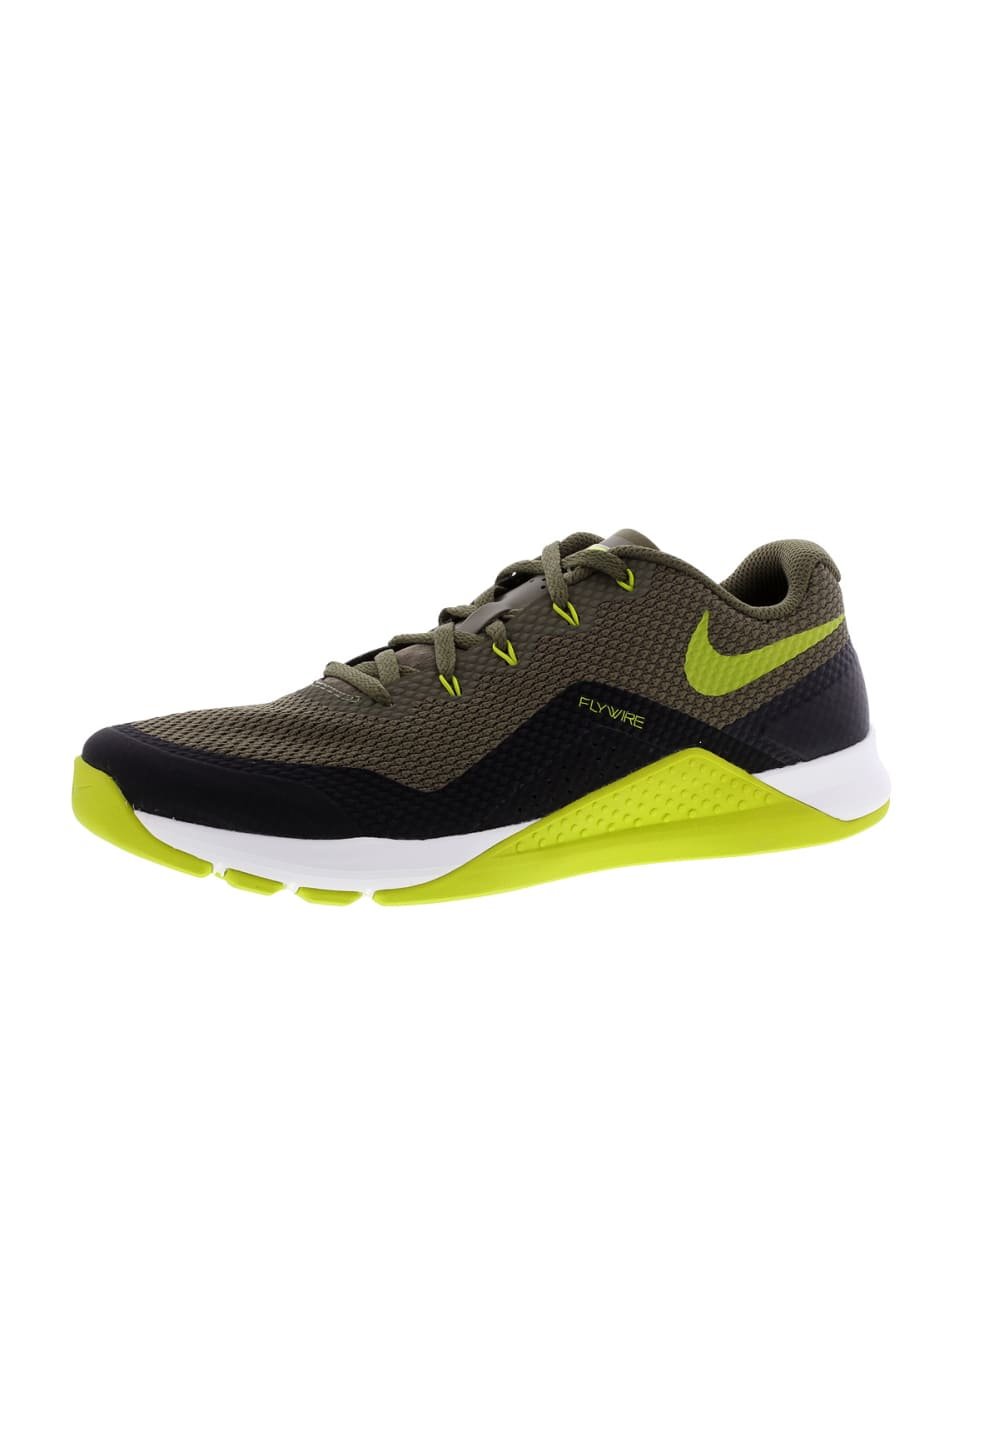 04b6cb13d94ba Nike Metcon Repper DSX - Fitness shoes for Men - Green